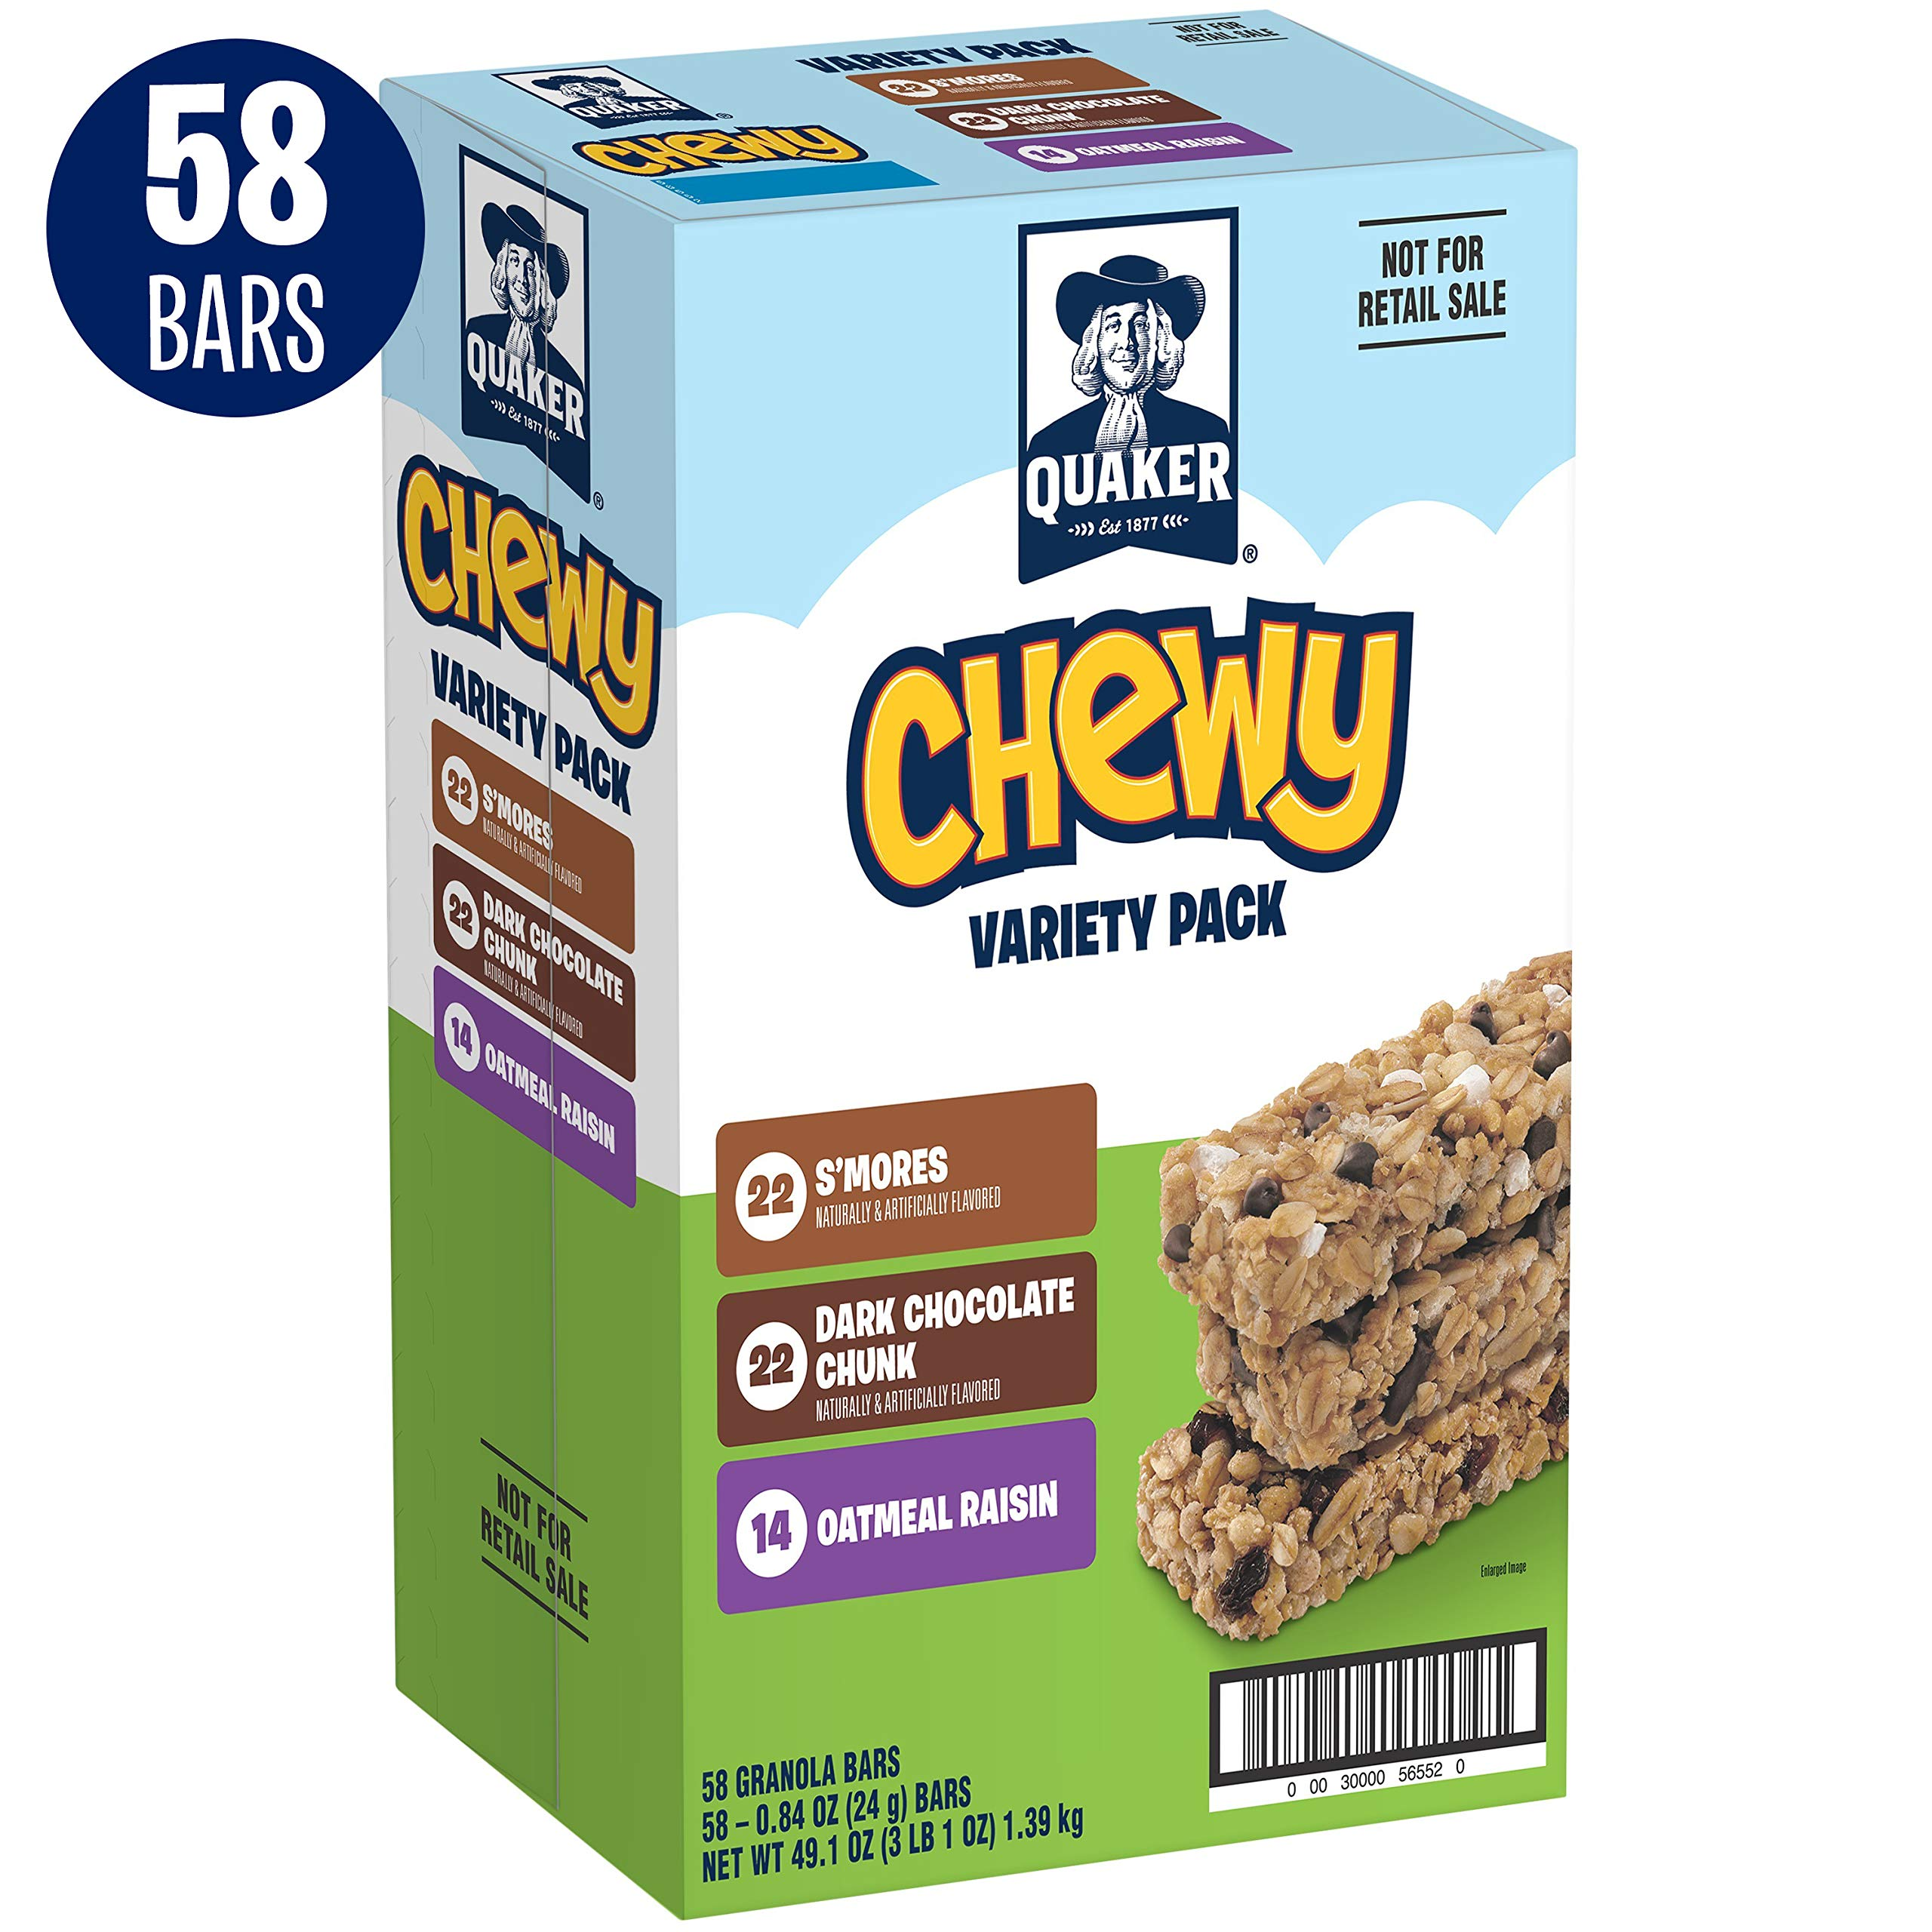 Quaker Chewy Granola Bars, Back to School Variety Pack, 58 Bars by Quaker